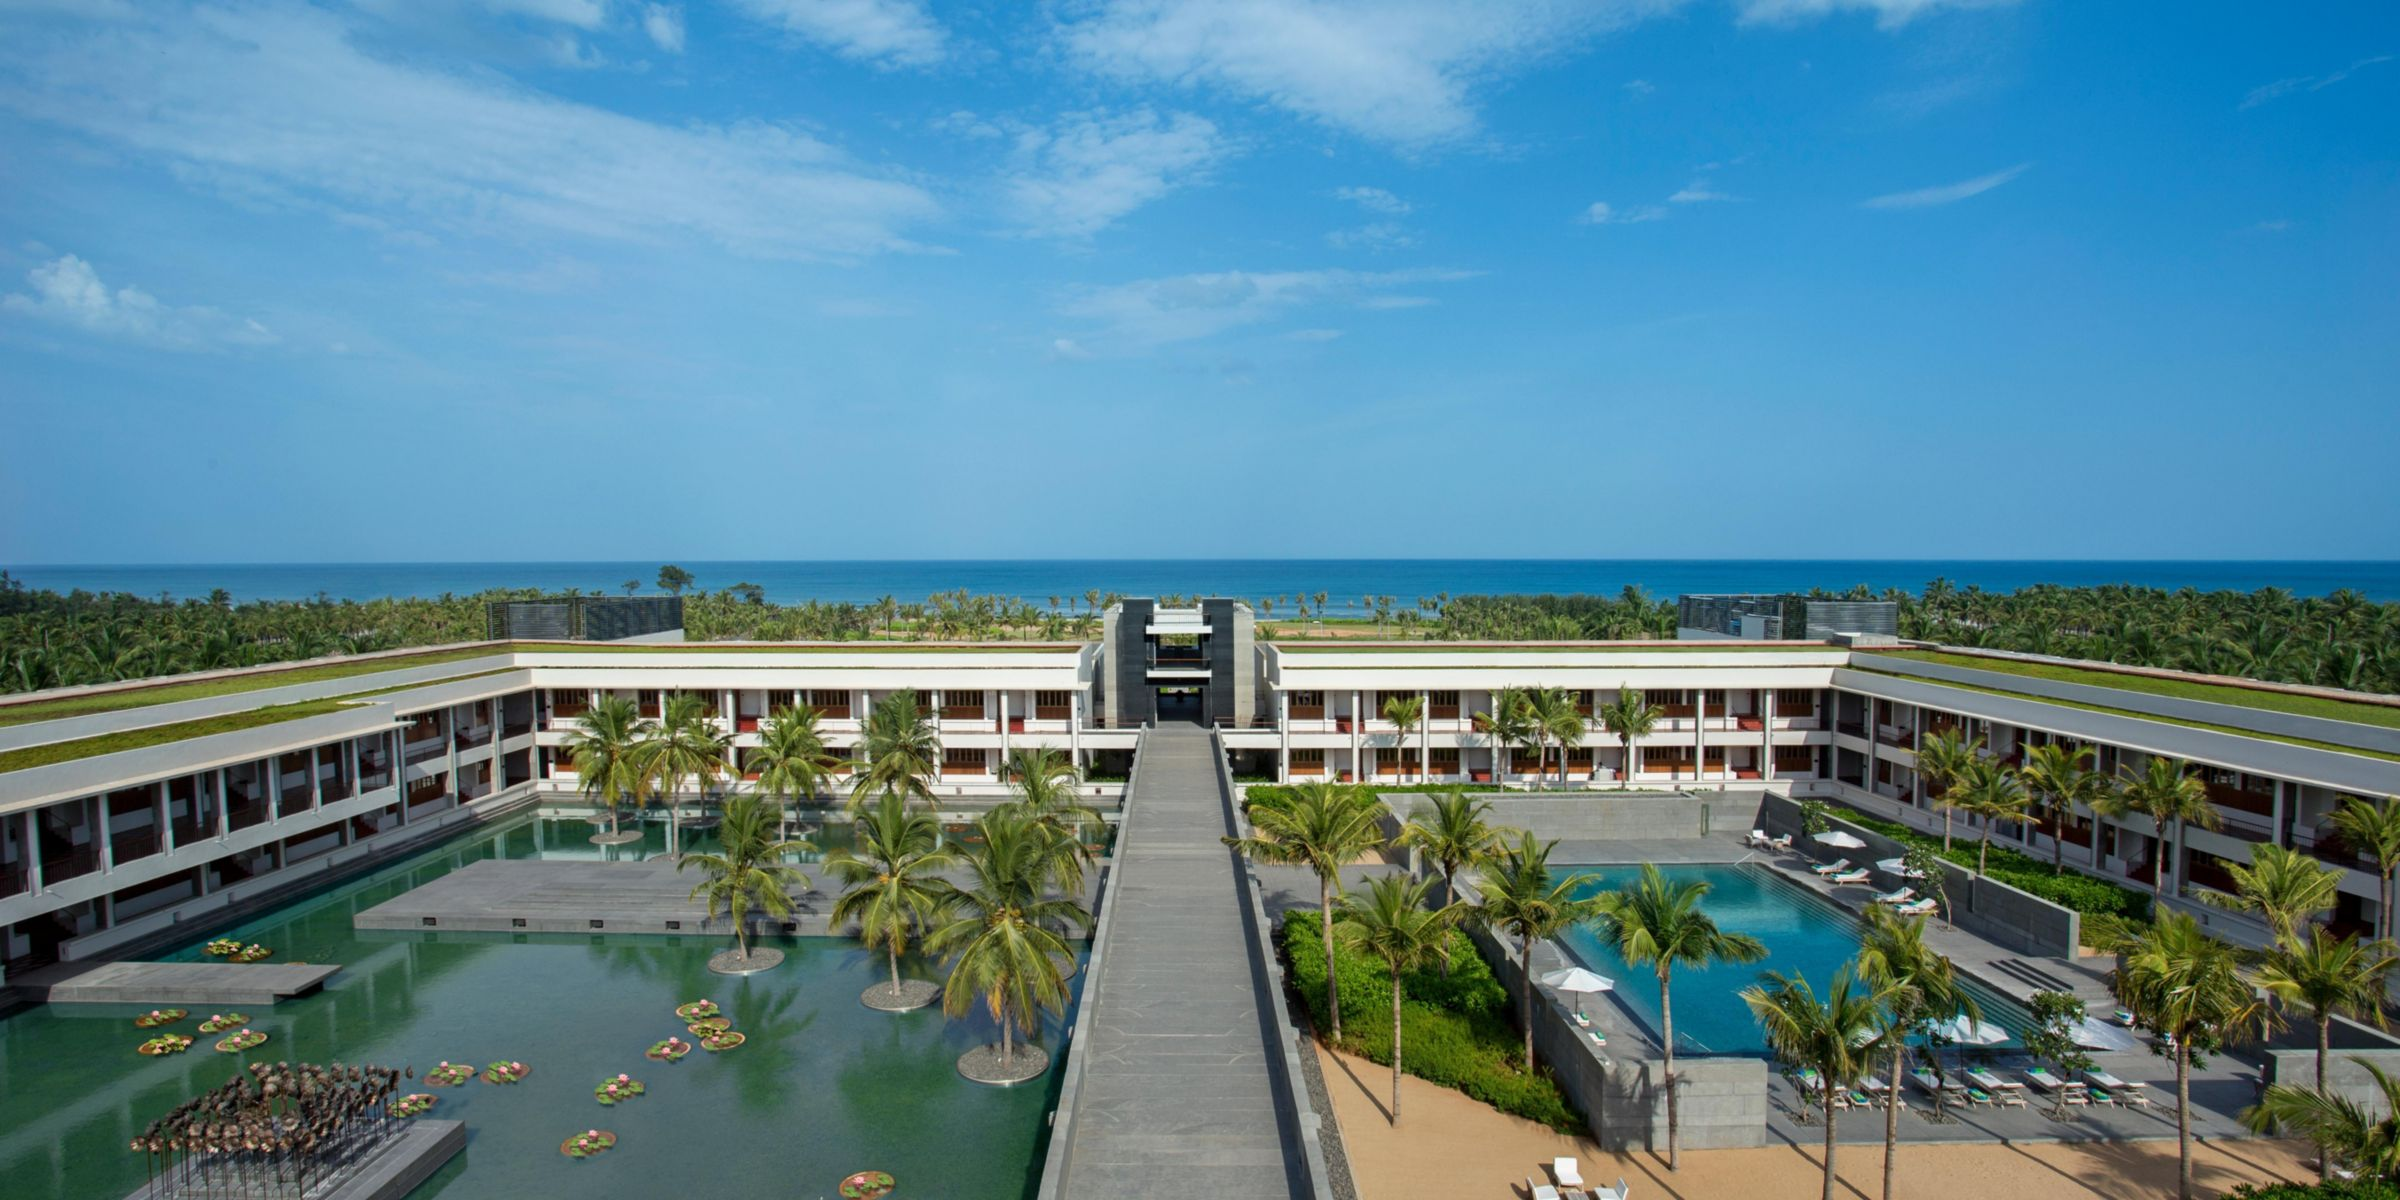 Concierge Entrance Aerial View Of Intercontinental Chennai Resort